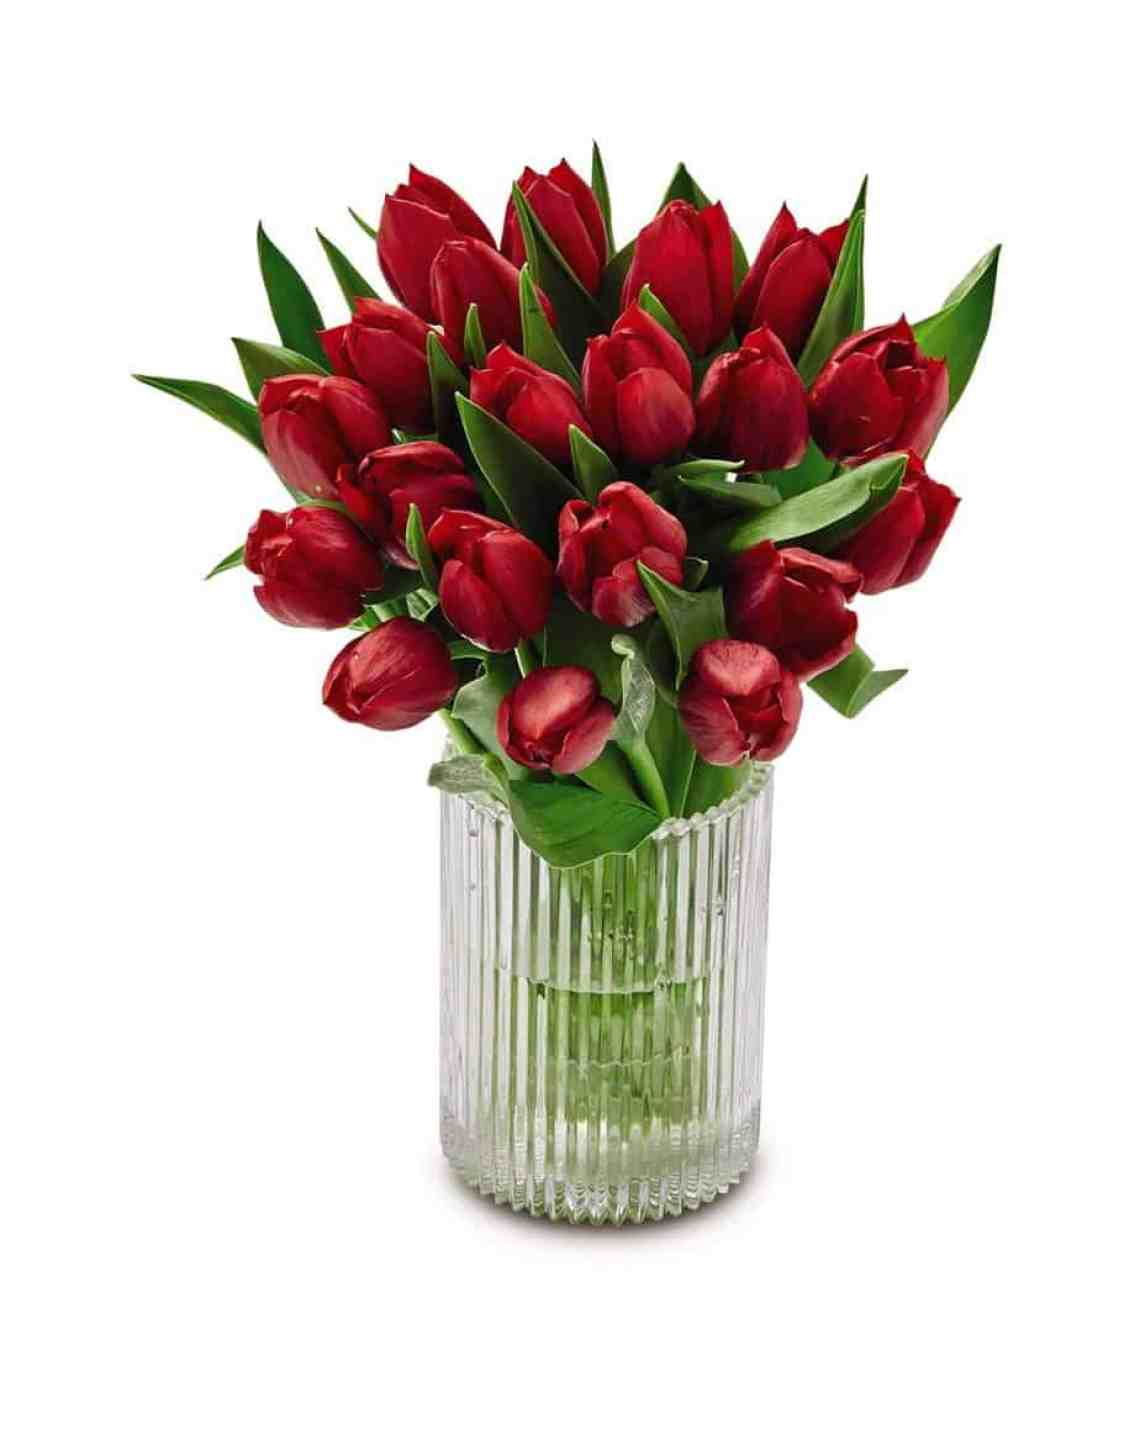 valentine's day flowers Aldi